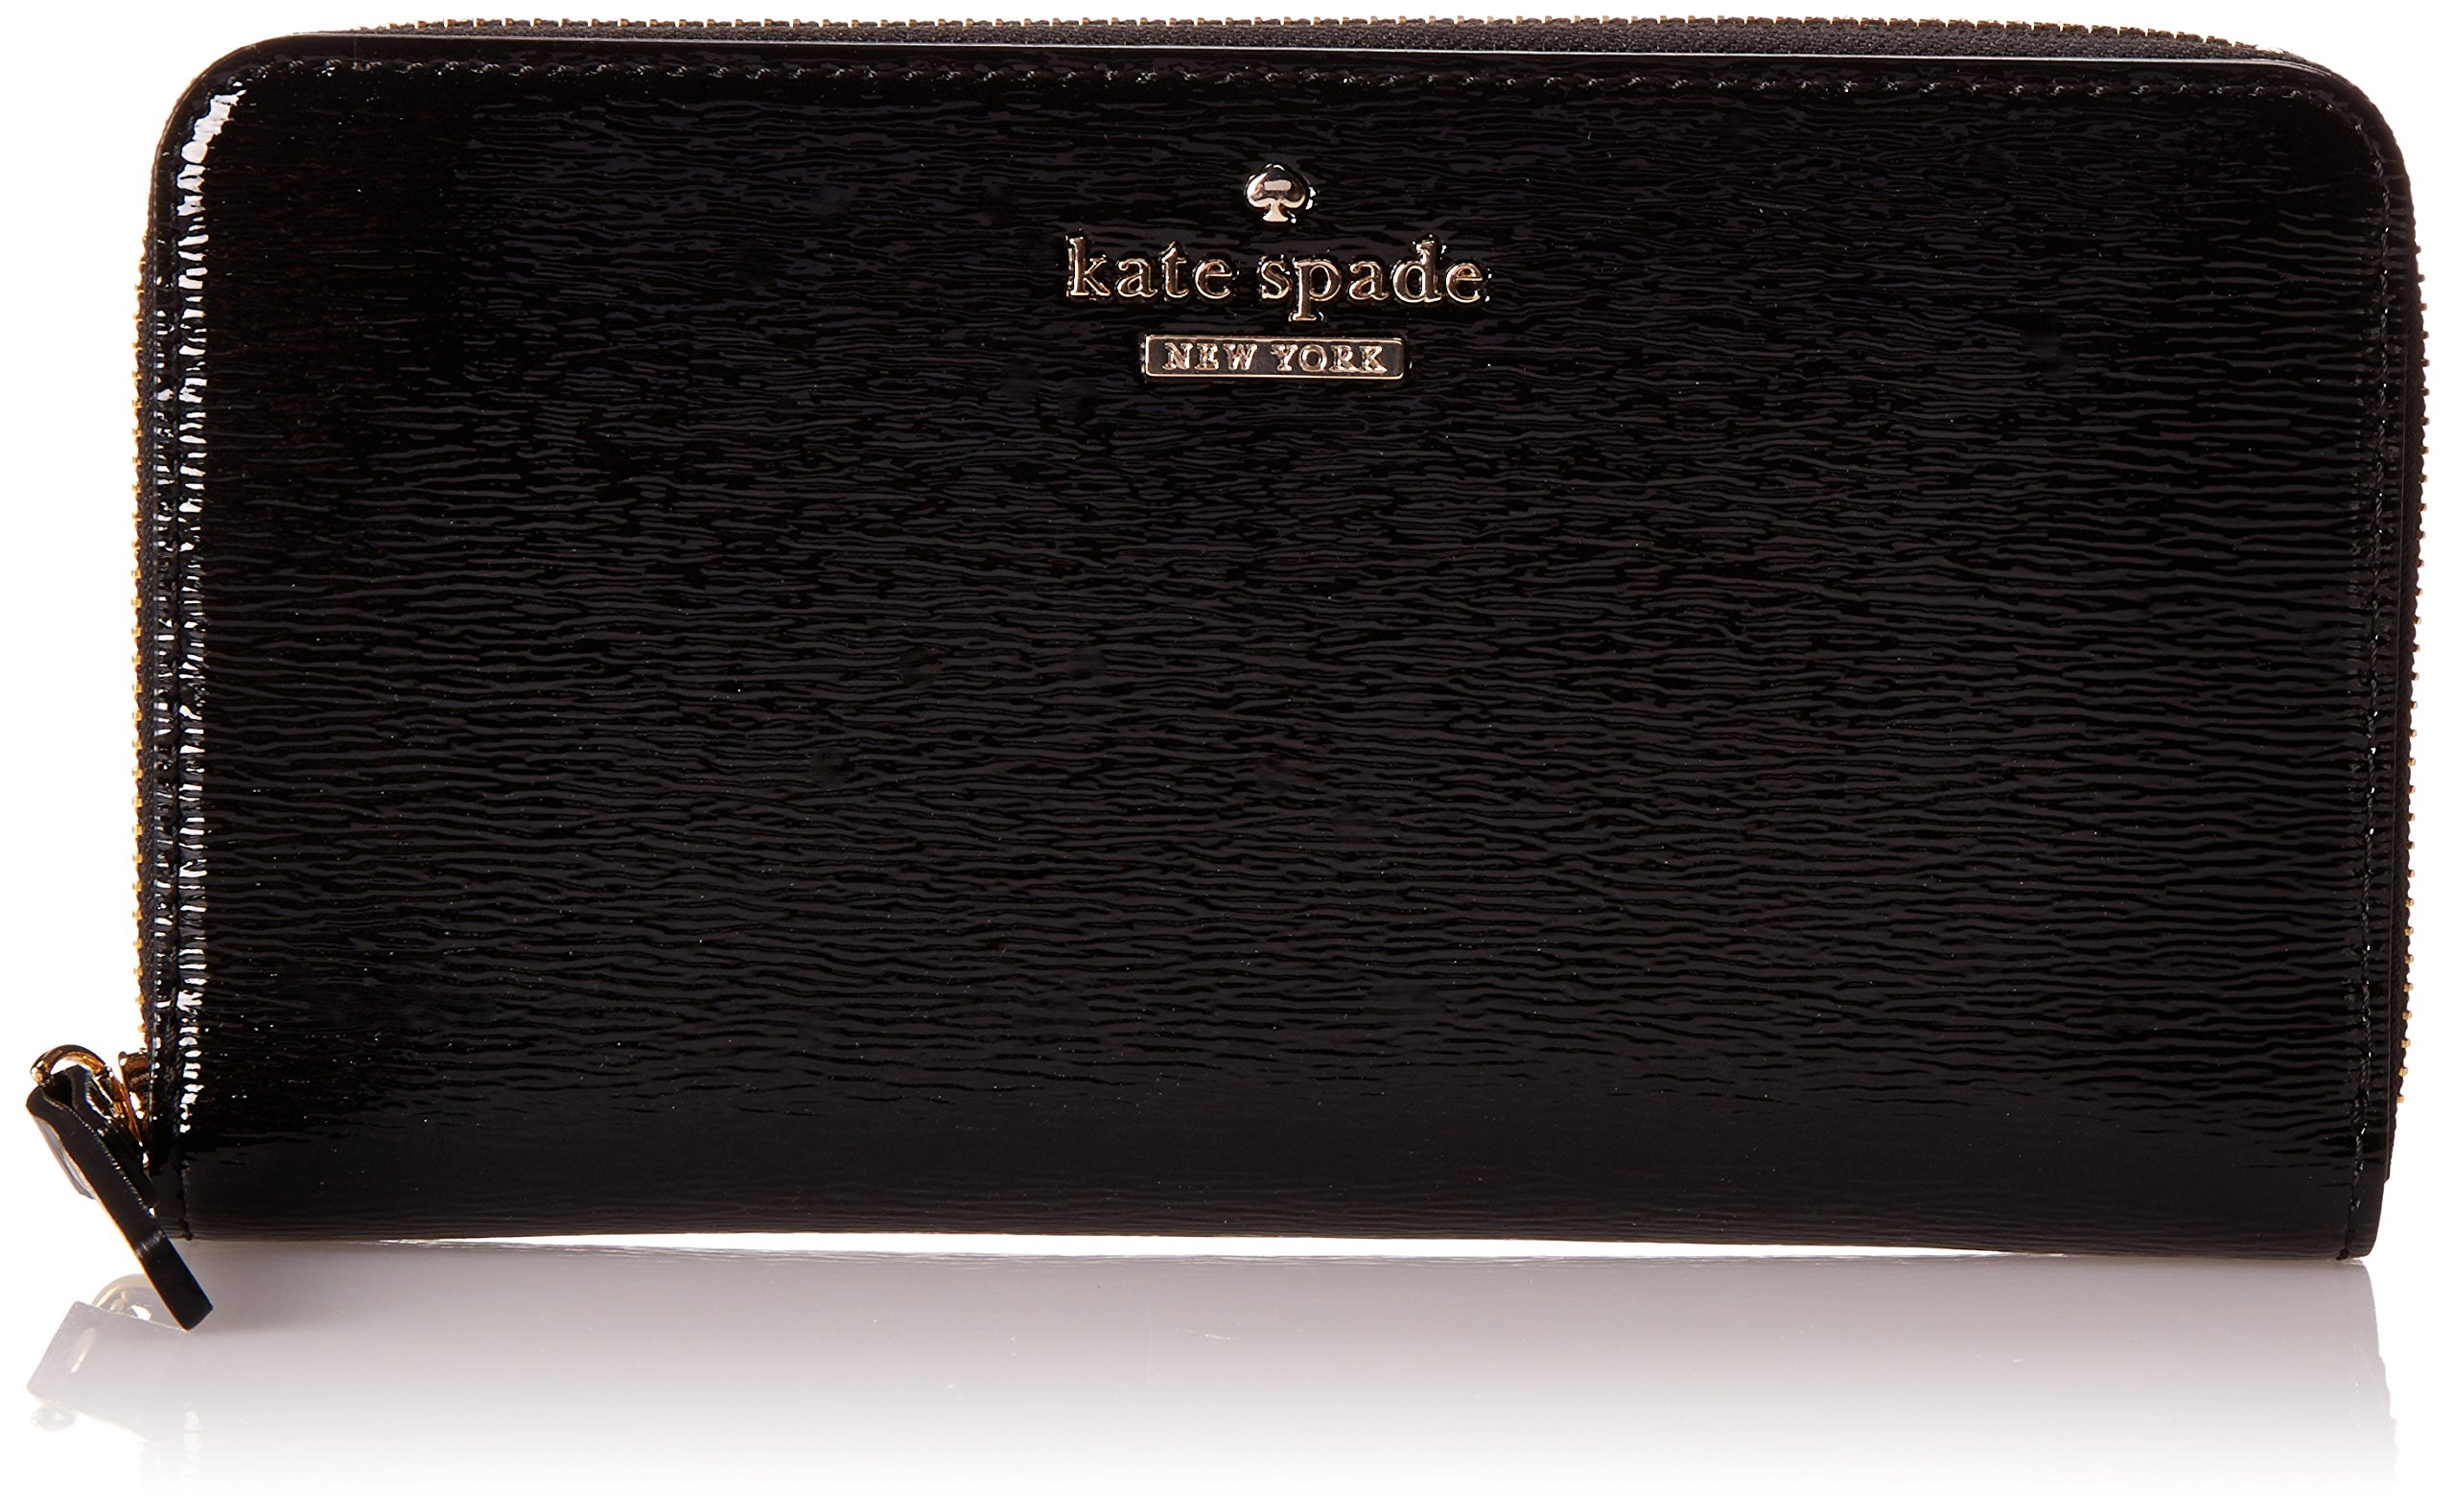 Kate Spade New York Cedar Street Patent Lacey Checkbook Wallet Black One Size